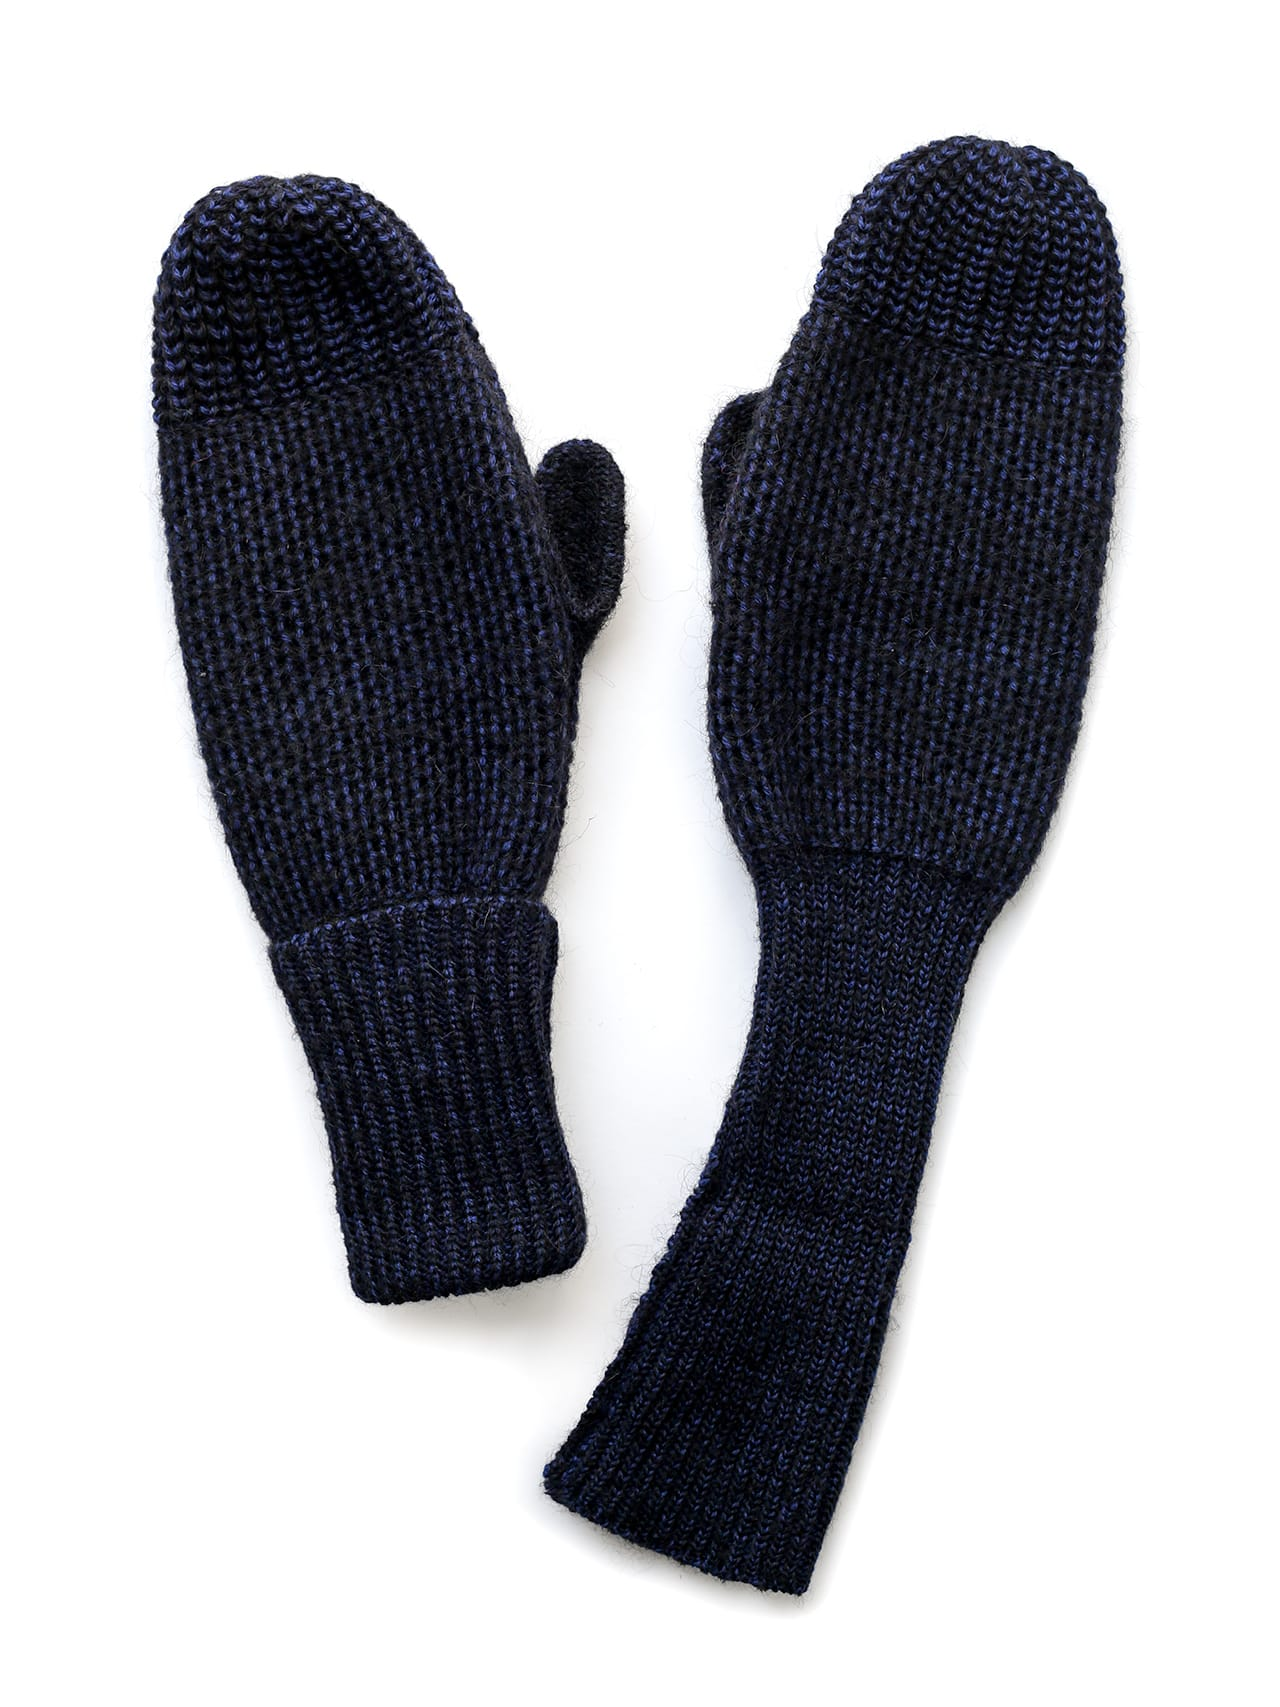 Paintbrush mittens - blue & black